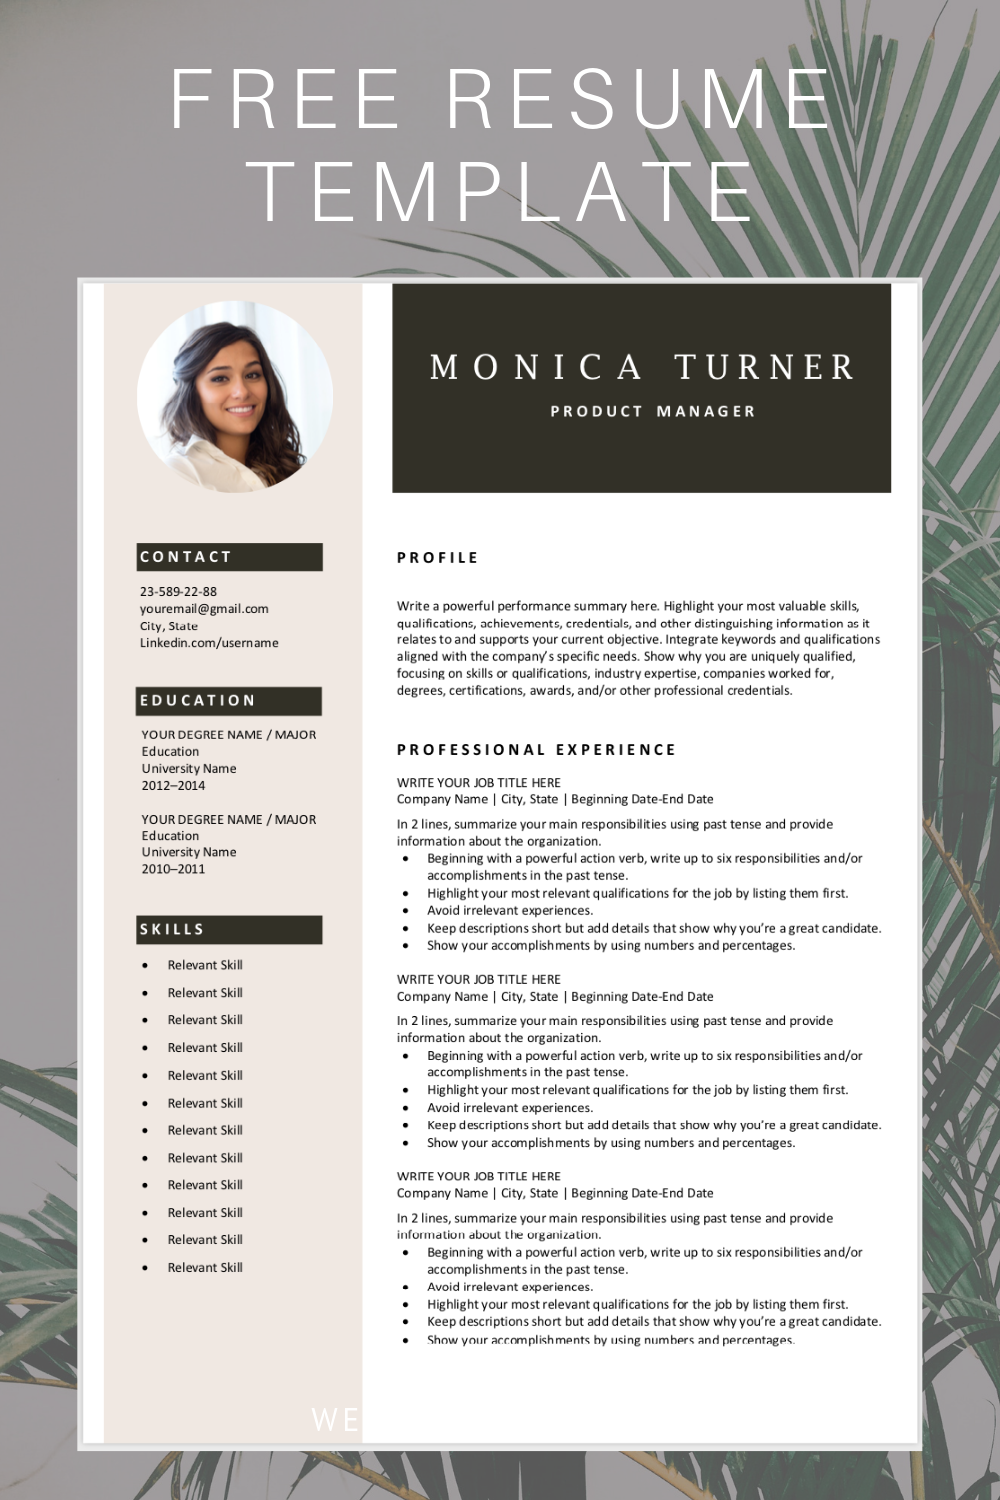 Are you looking for a free, editable resume template? Sign